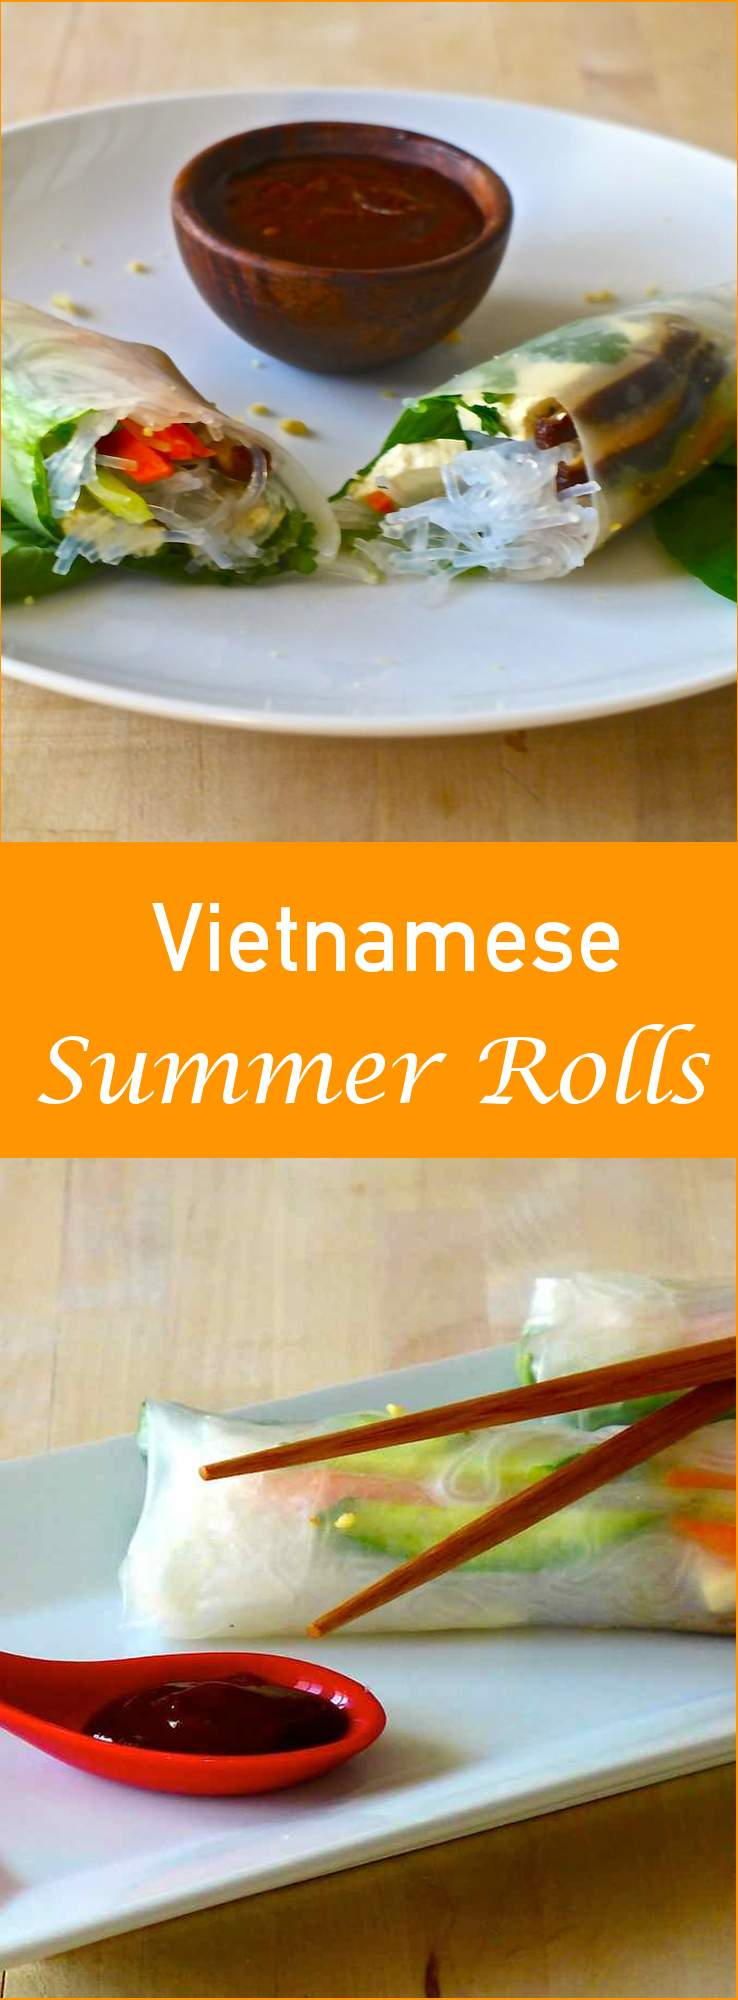 Gỏi cuốn chay is the vegetarian version of Vietnamese spring roll or summer roll, which consists of herbs, vegetables and tofu wrapped in rice paper.